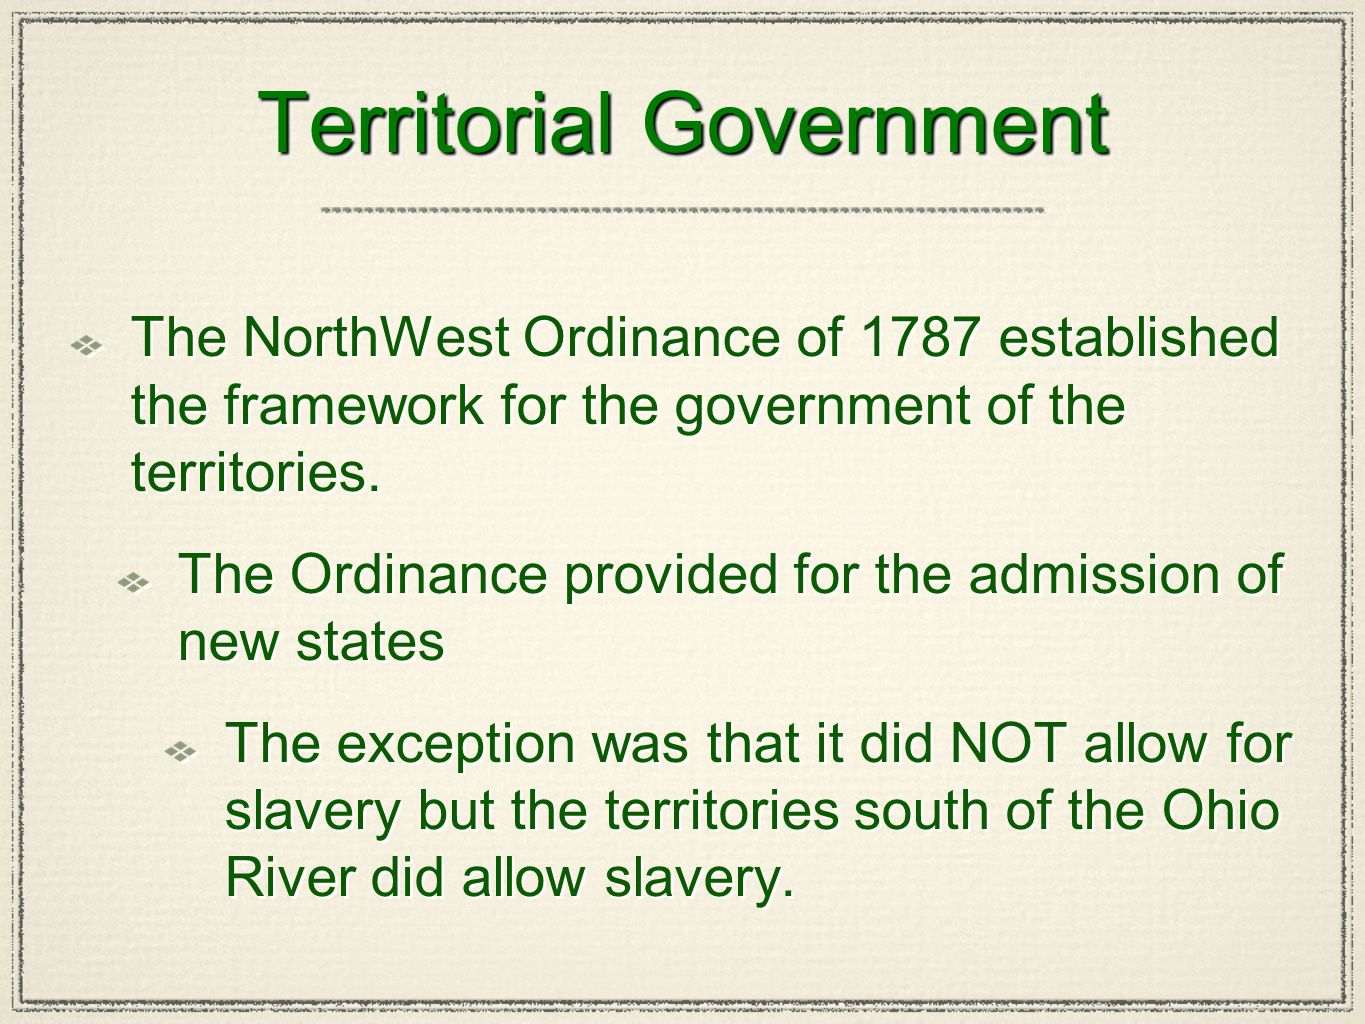 Territorial Government The NorthWest Ordinance of 1787 established the framework for the government of the territories. The Ordinance provided for the